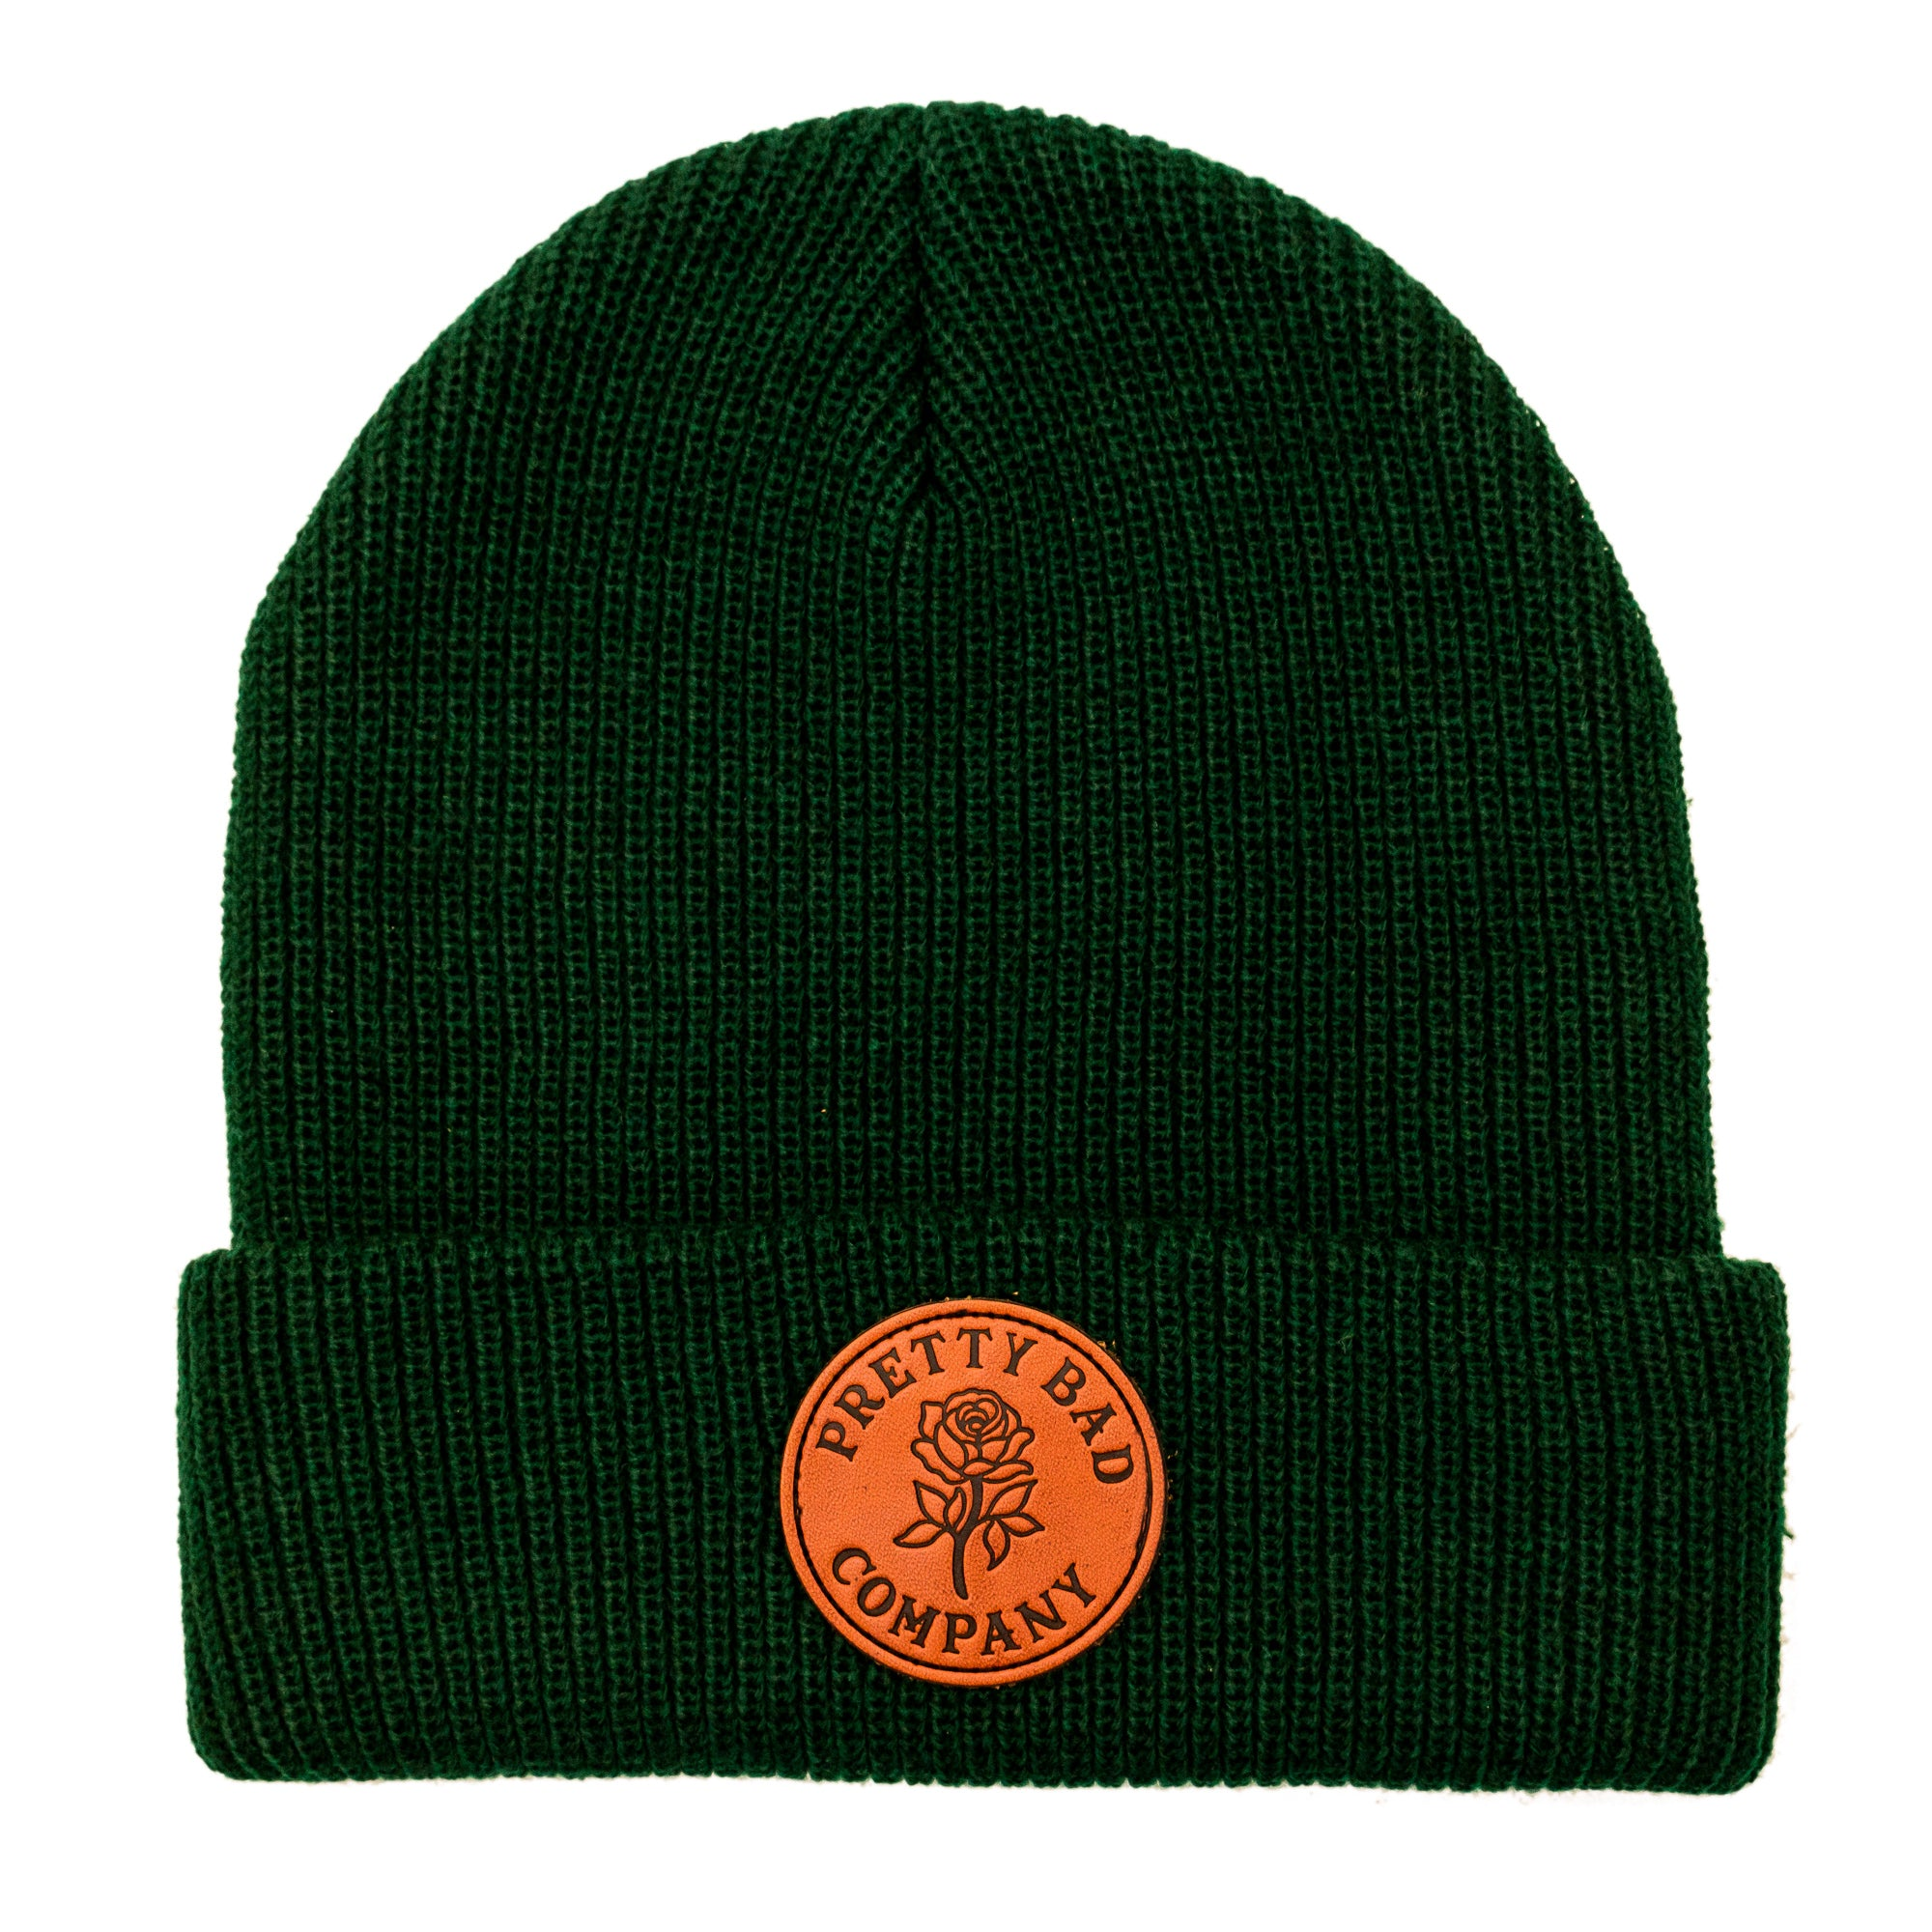 Pretty Bad Company Rose Beanie